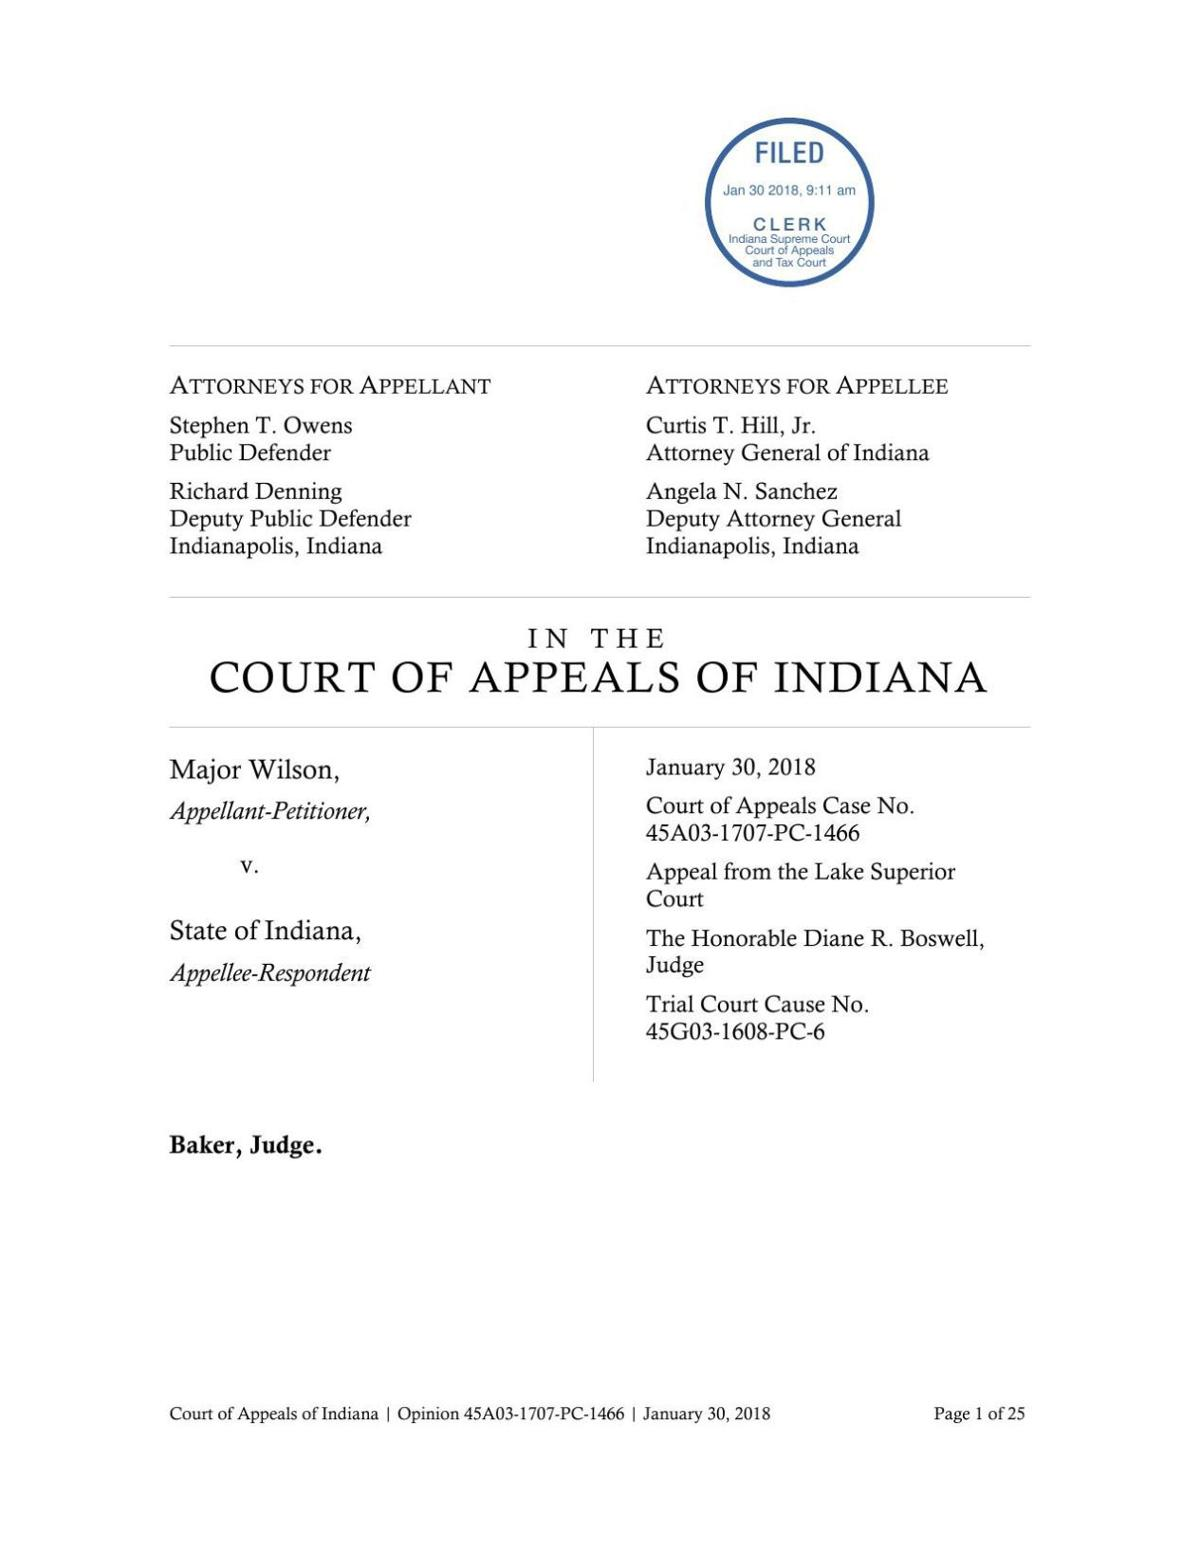 Wilson v. State ruling of Indiana Court of Appeals (2018)